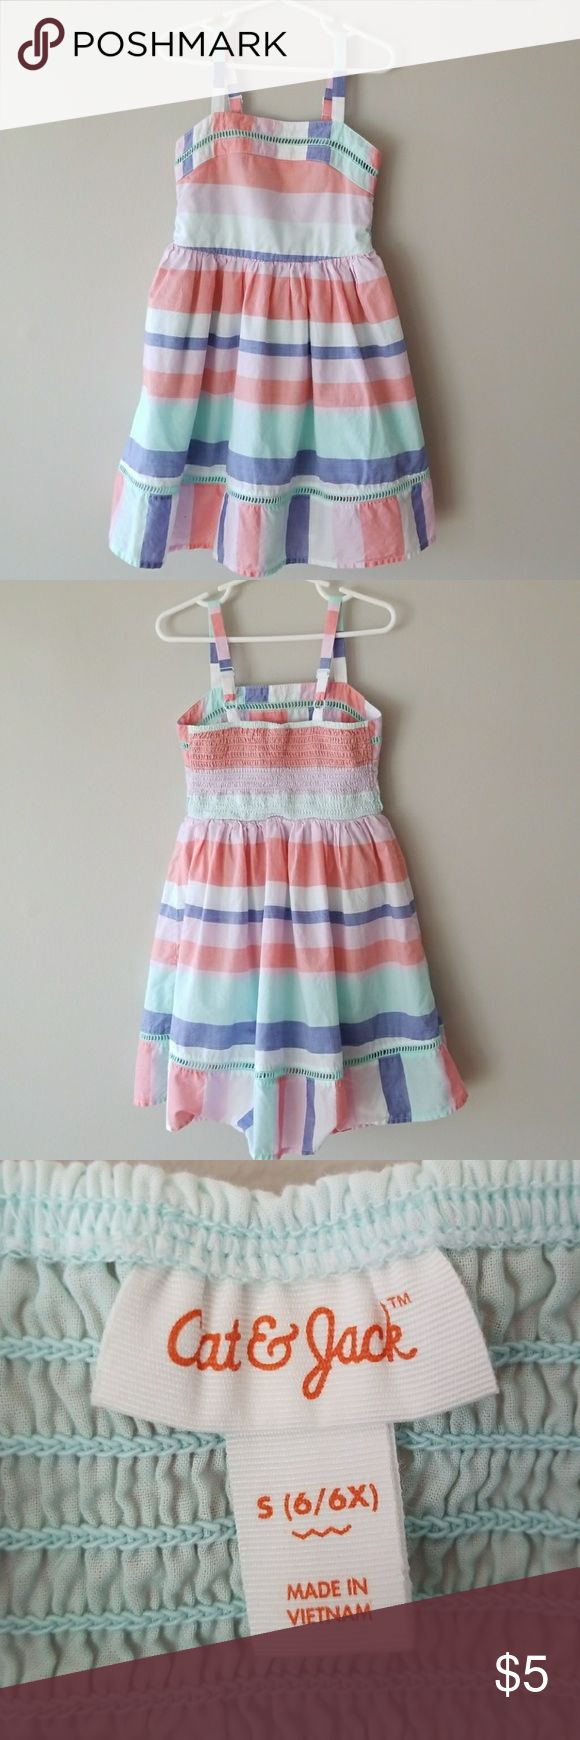 💥Kids💥Multi stripe sun dress GUC small mark on front, see pics 4 and 5. Mint, blue, coral, light pink and white.  Mint lining. 100% cotton. Size 6/6x Cat & Jack Dresses Casual